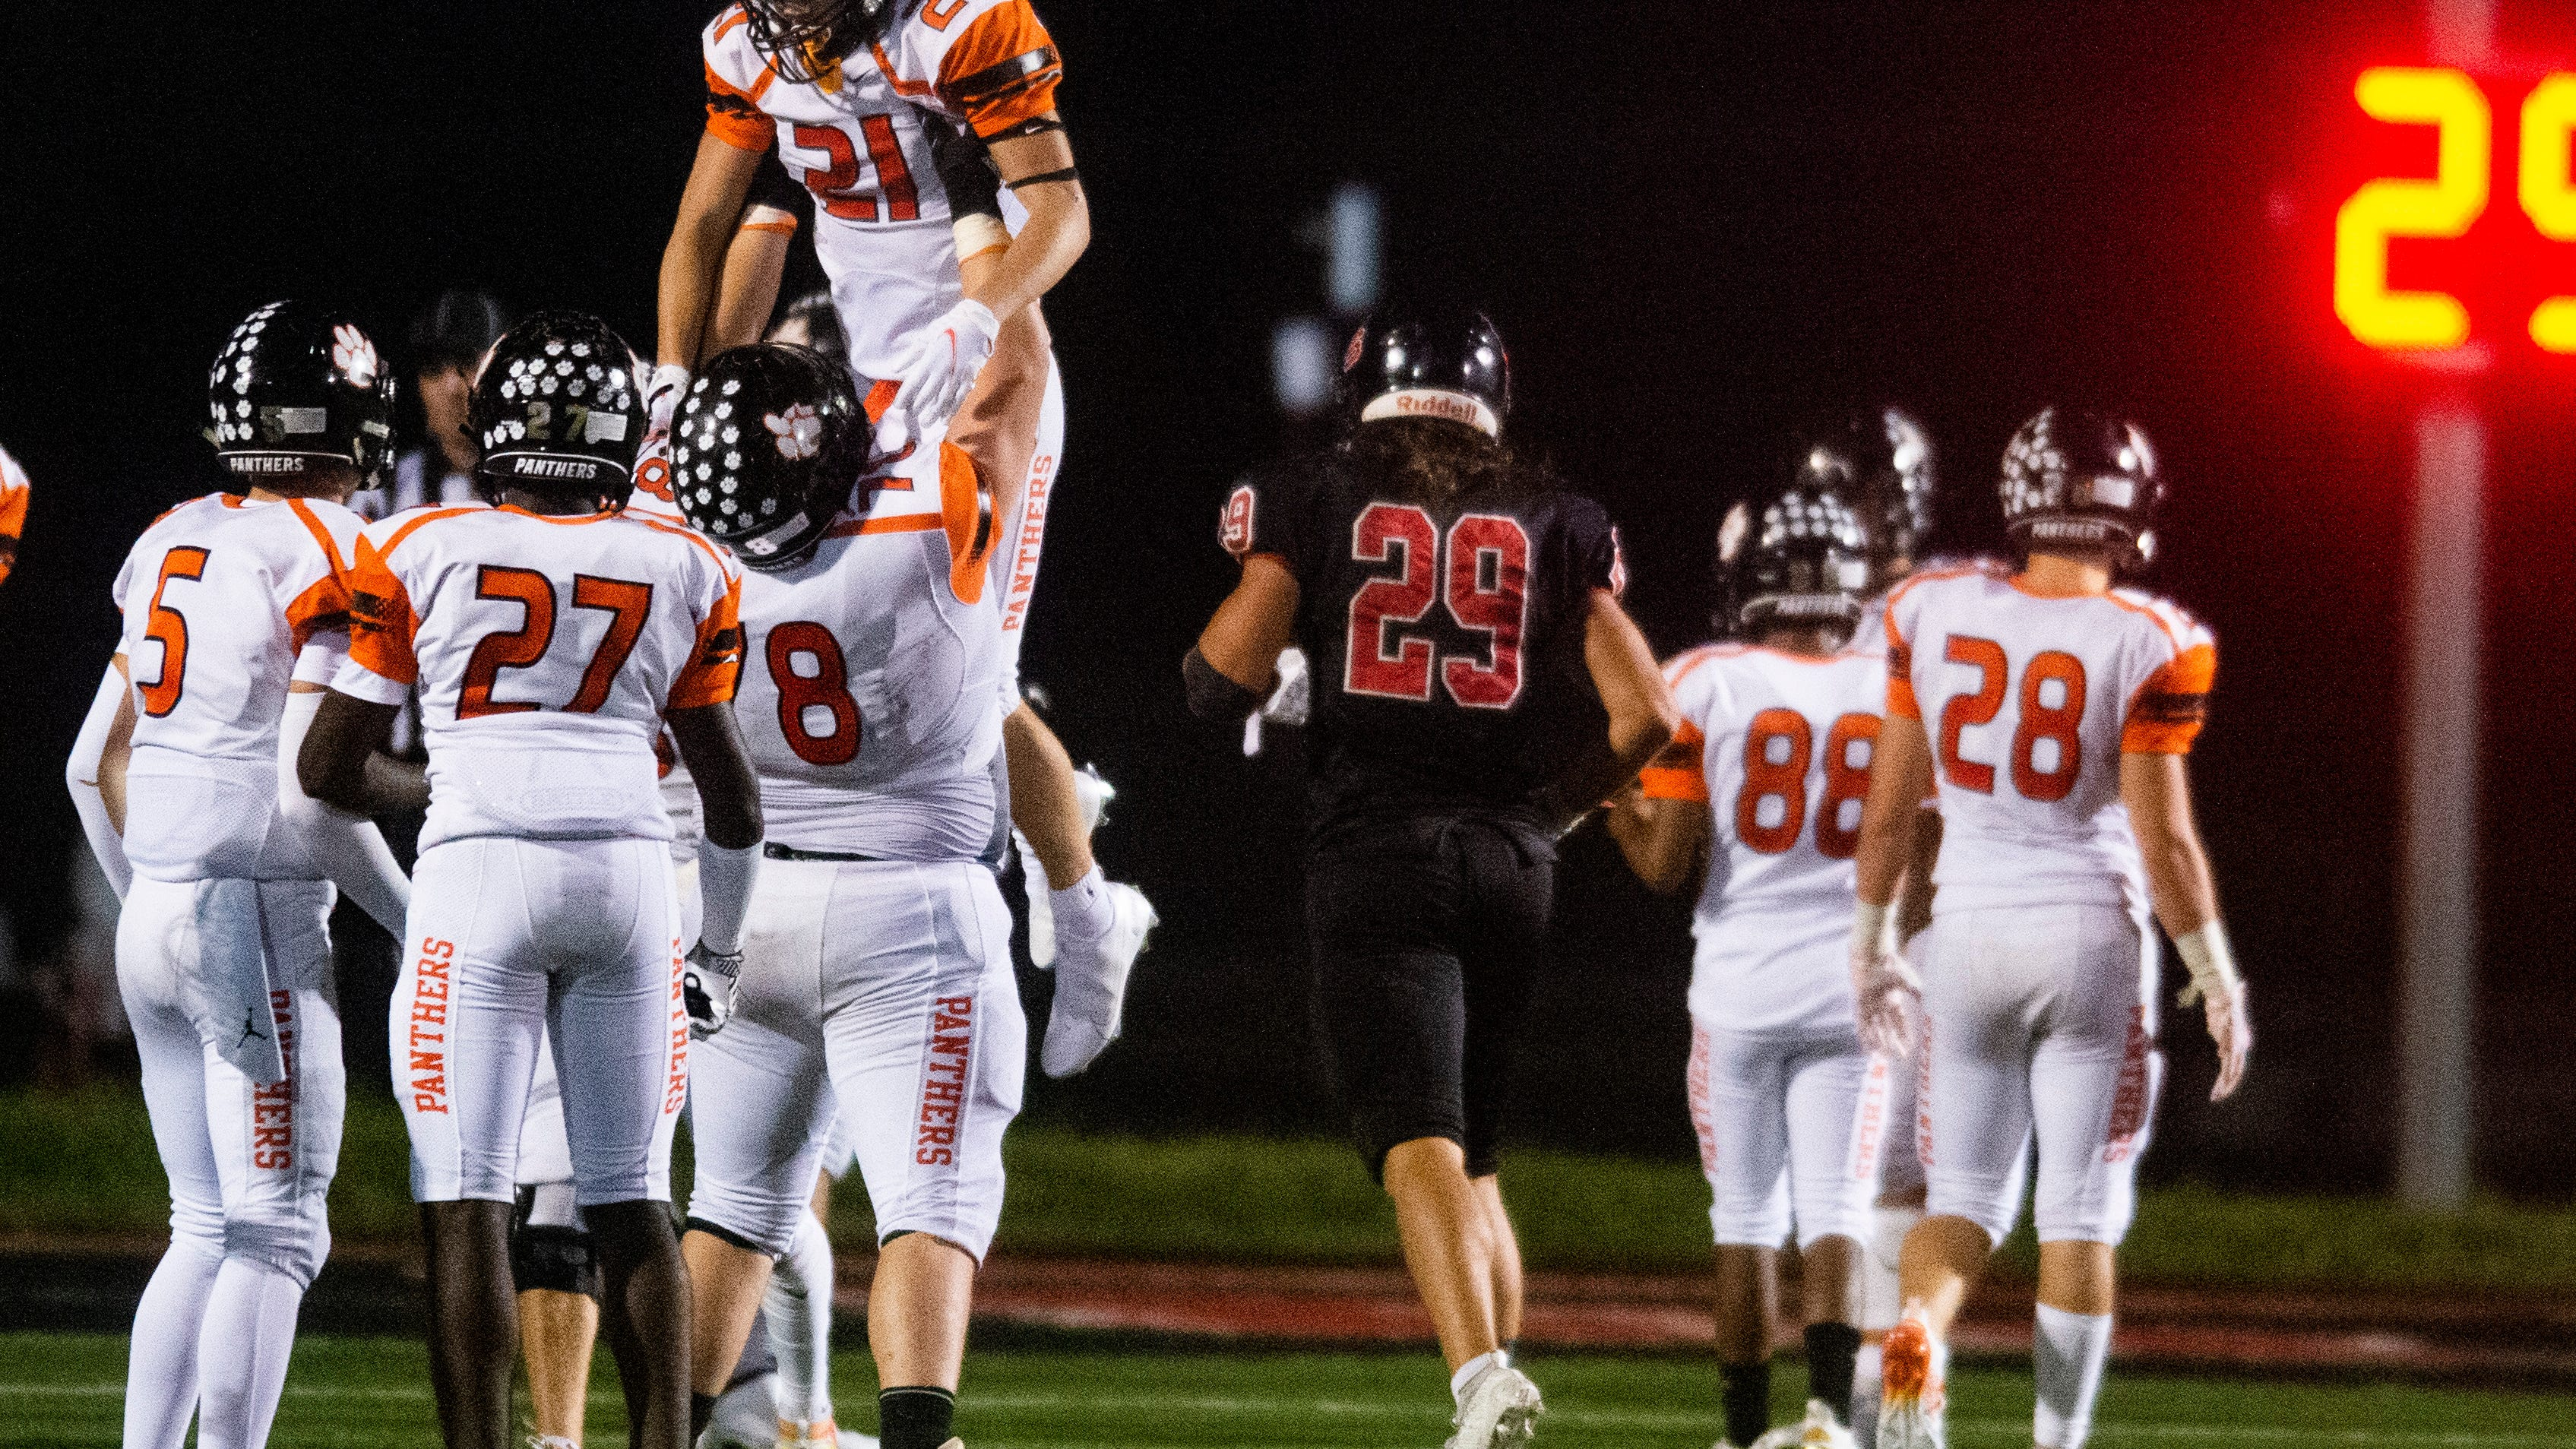 PrepXtra: Powell at Central football game in week 5 of 2020 season